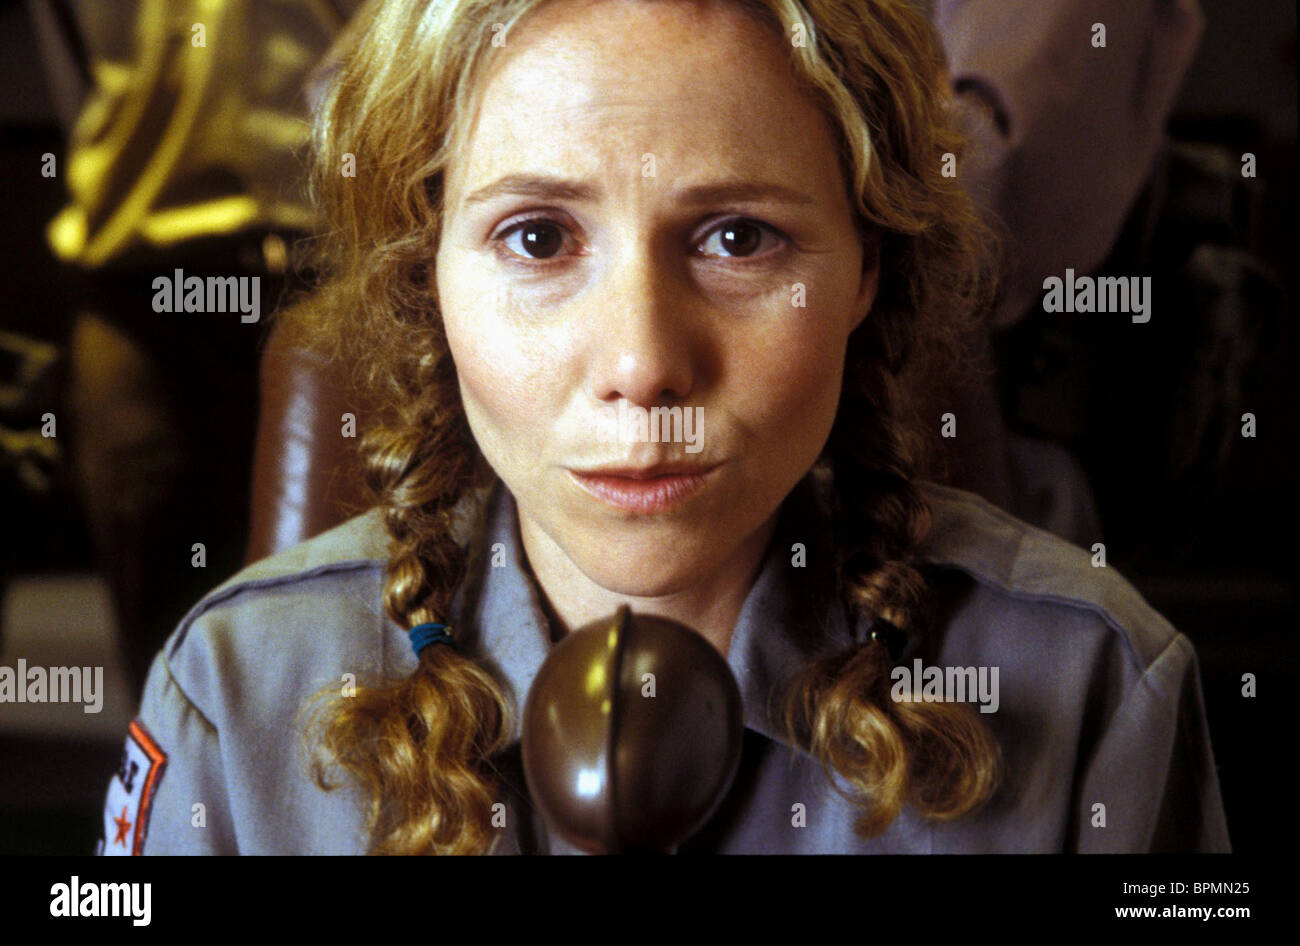 SALLY PHILLIPS TOOTH (2004) - Stock Image